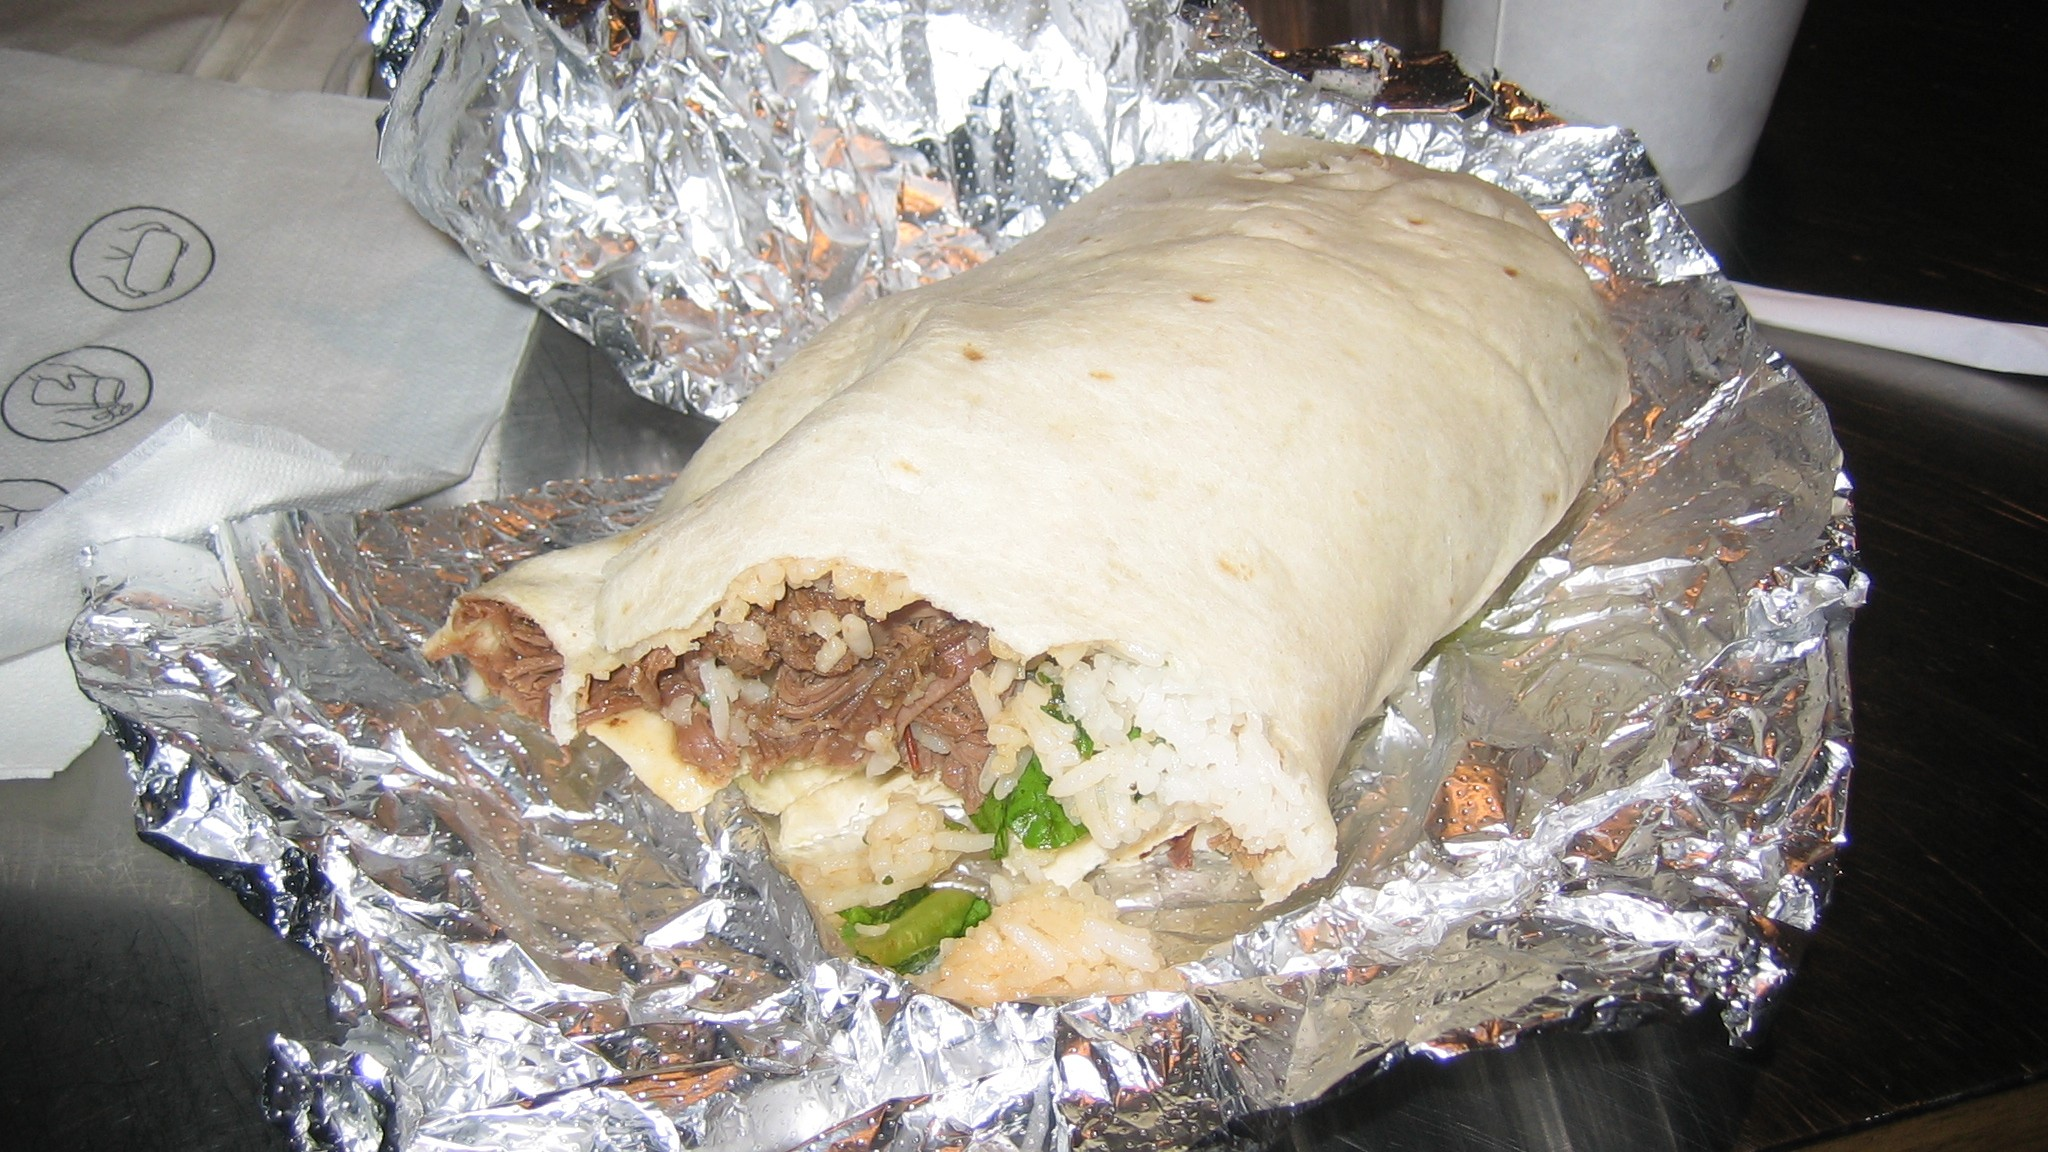 Chipotle Livestreamed Its Critical Food Safety Meeting for a Whole 94 Seconds